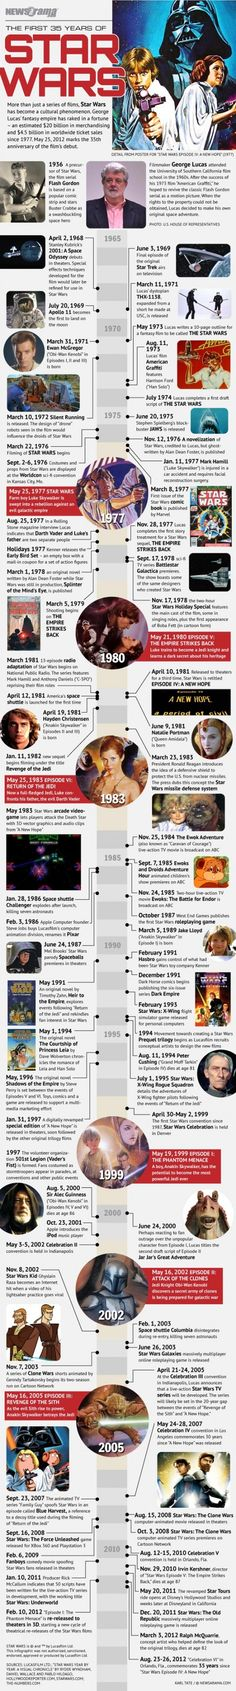 INFOGRAPHIC: THE FIRST 35 YEARS OF STAR WARS